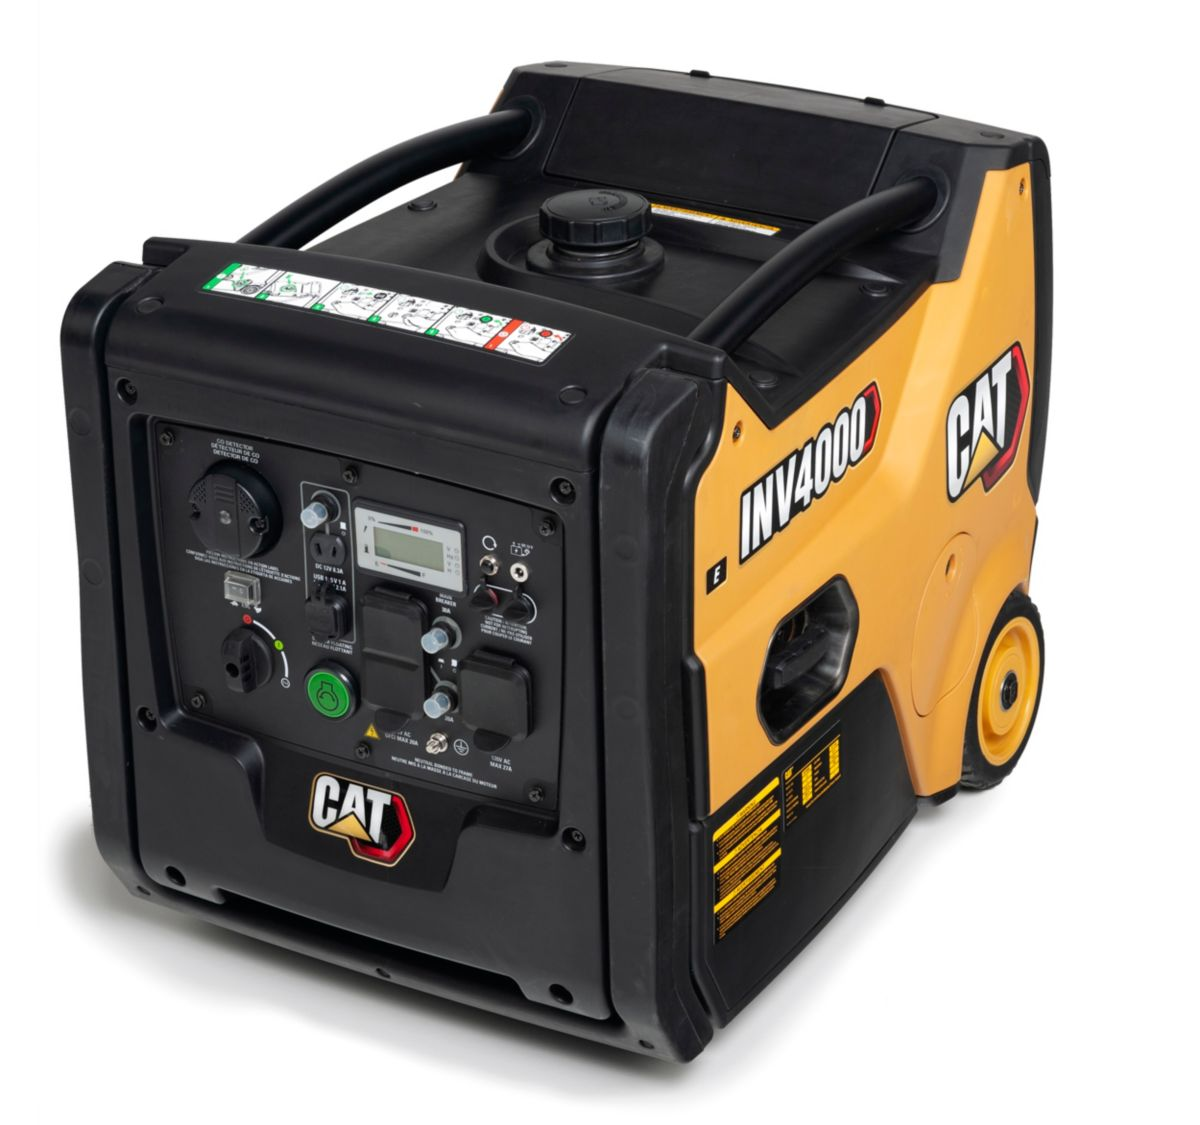 3200 watt inverter generator Cat® INV4000 E quiet generator